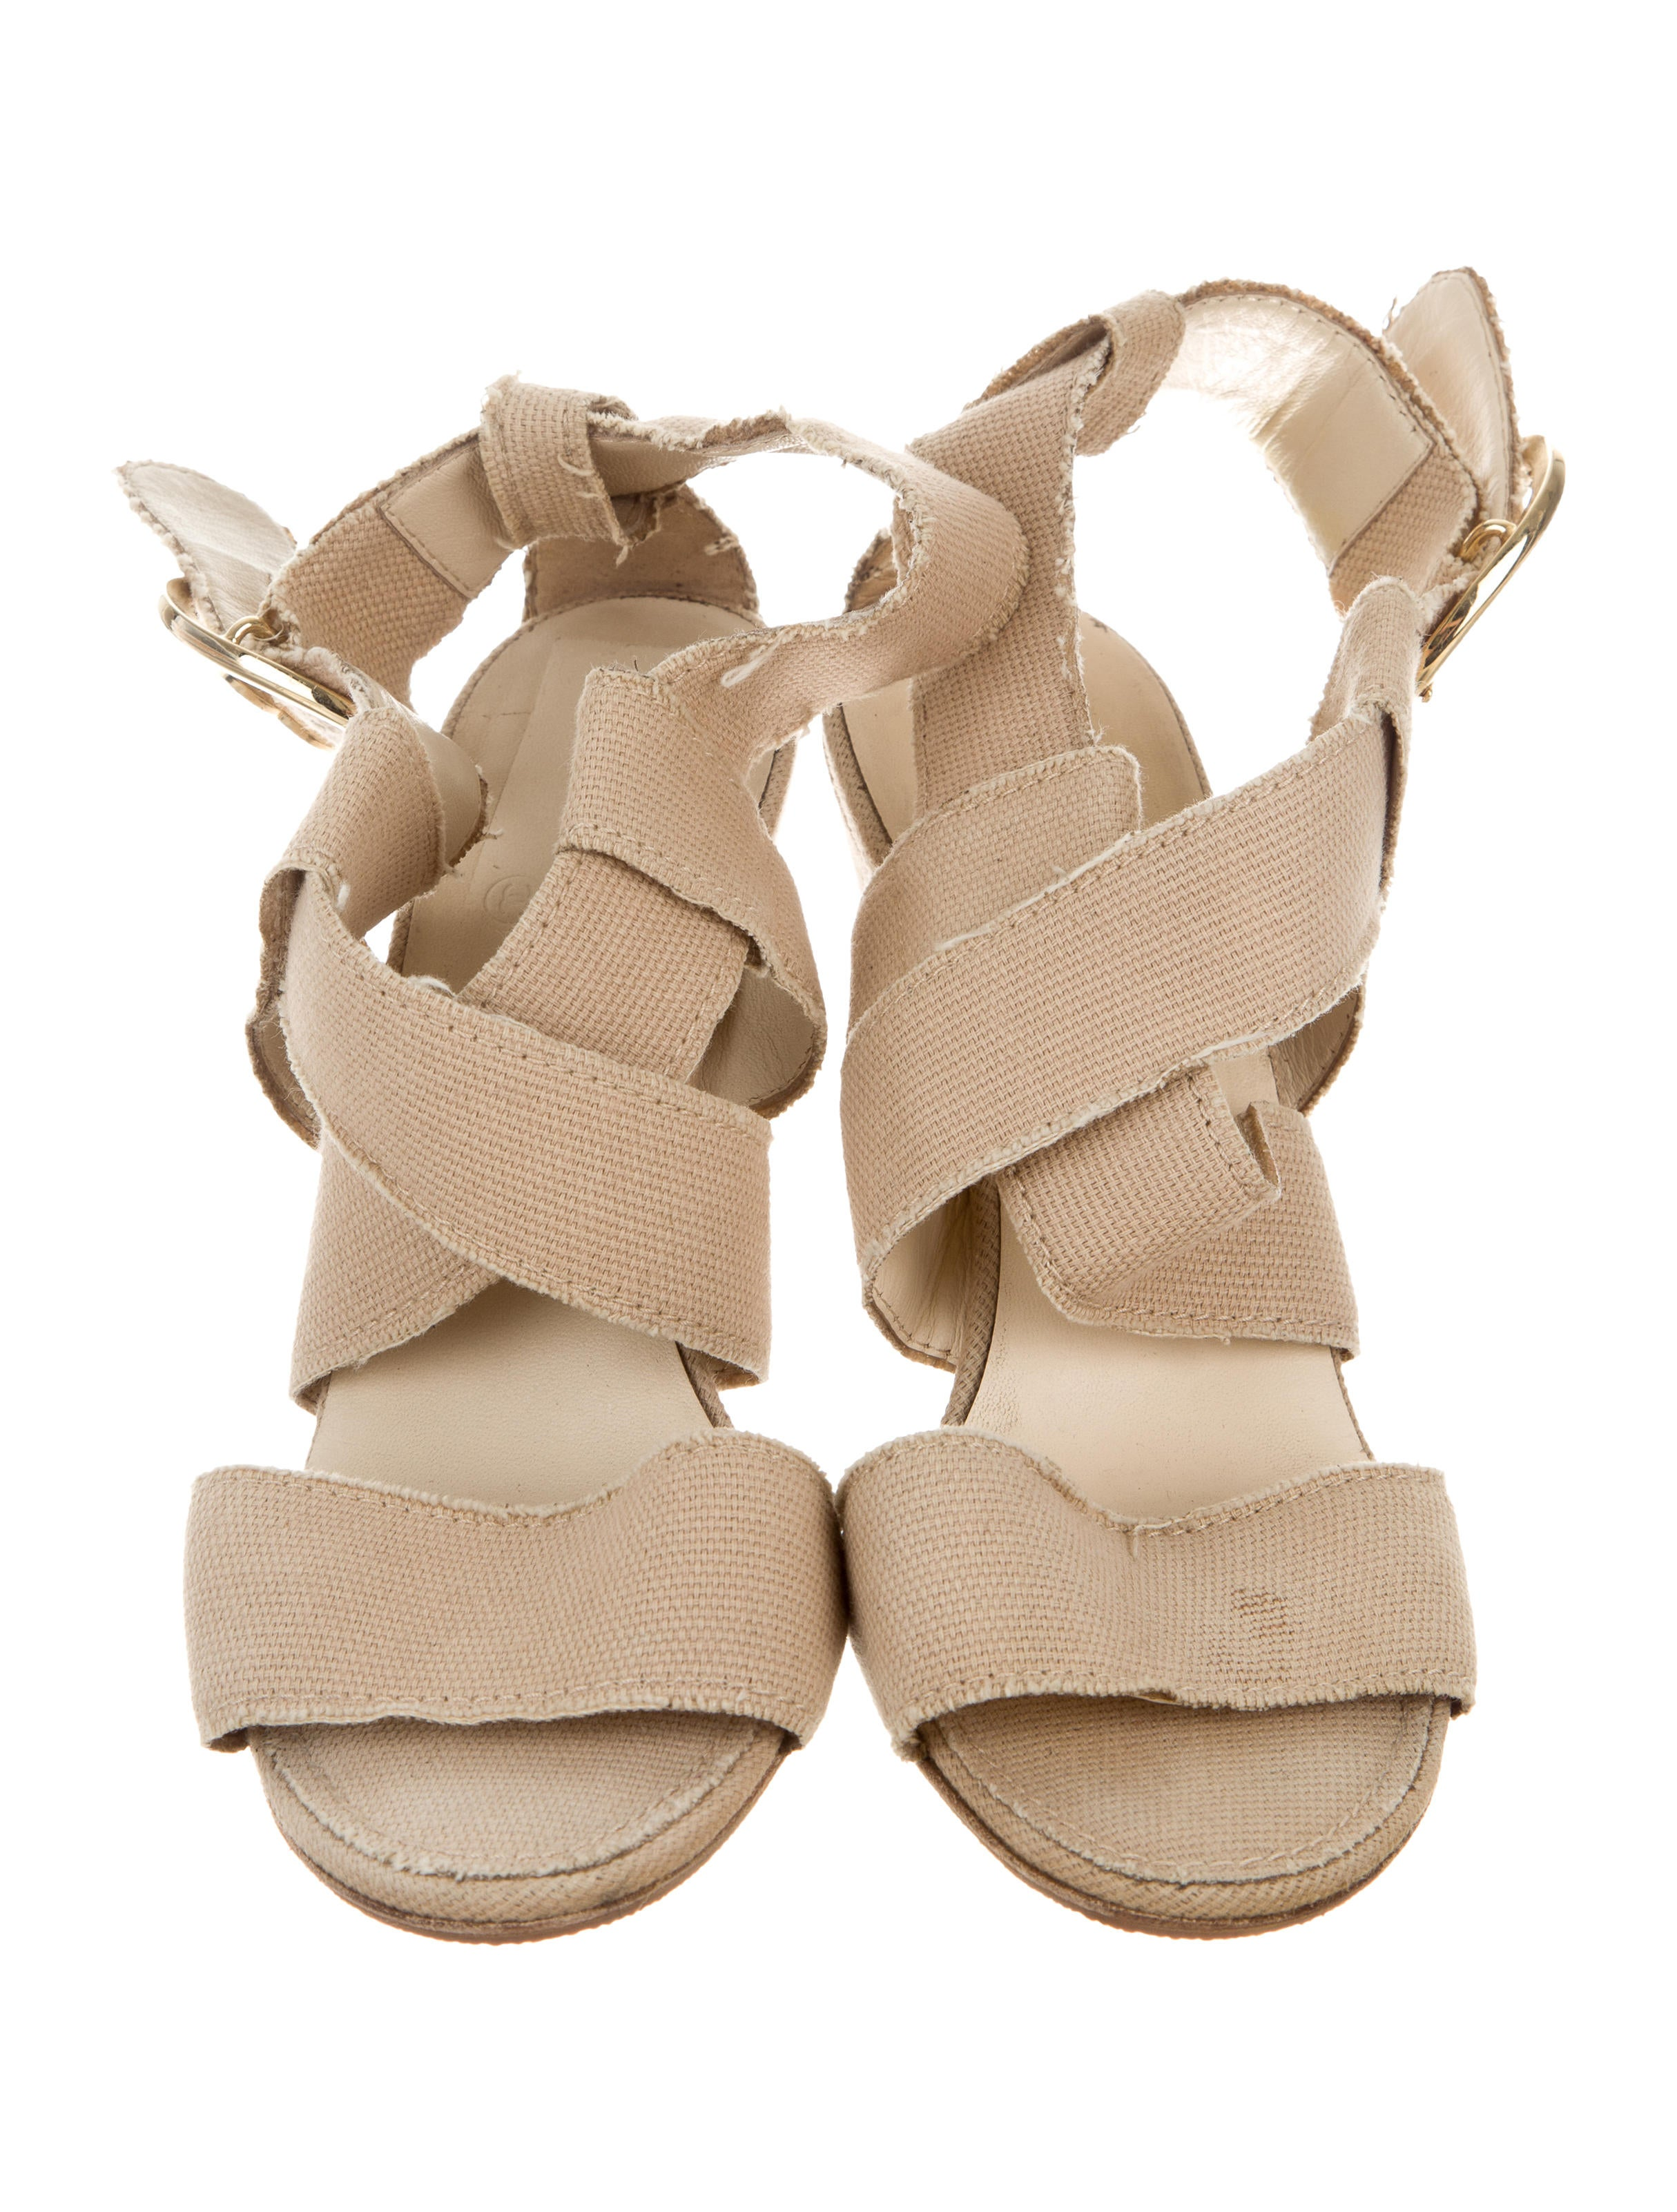 Shop women's wedges at mediacrucialxa.cf Discover a stylish selection of the latest brand name and designer fashions all at a great value.